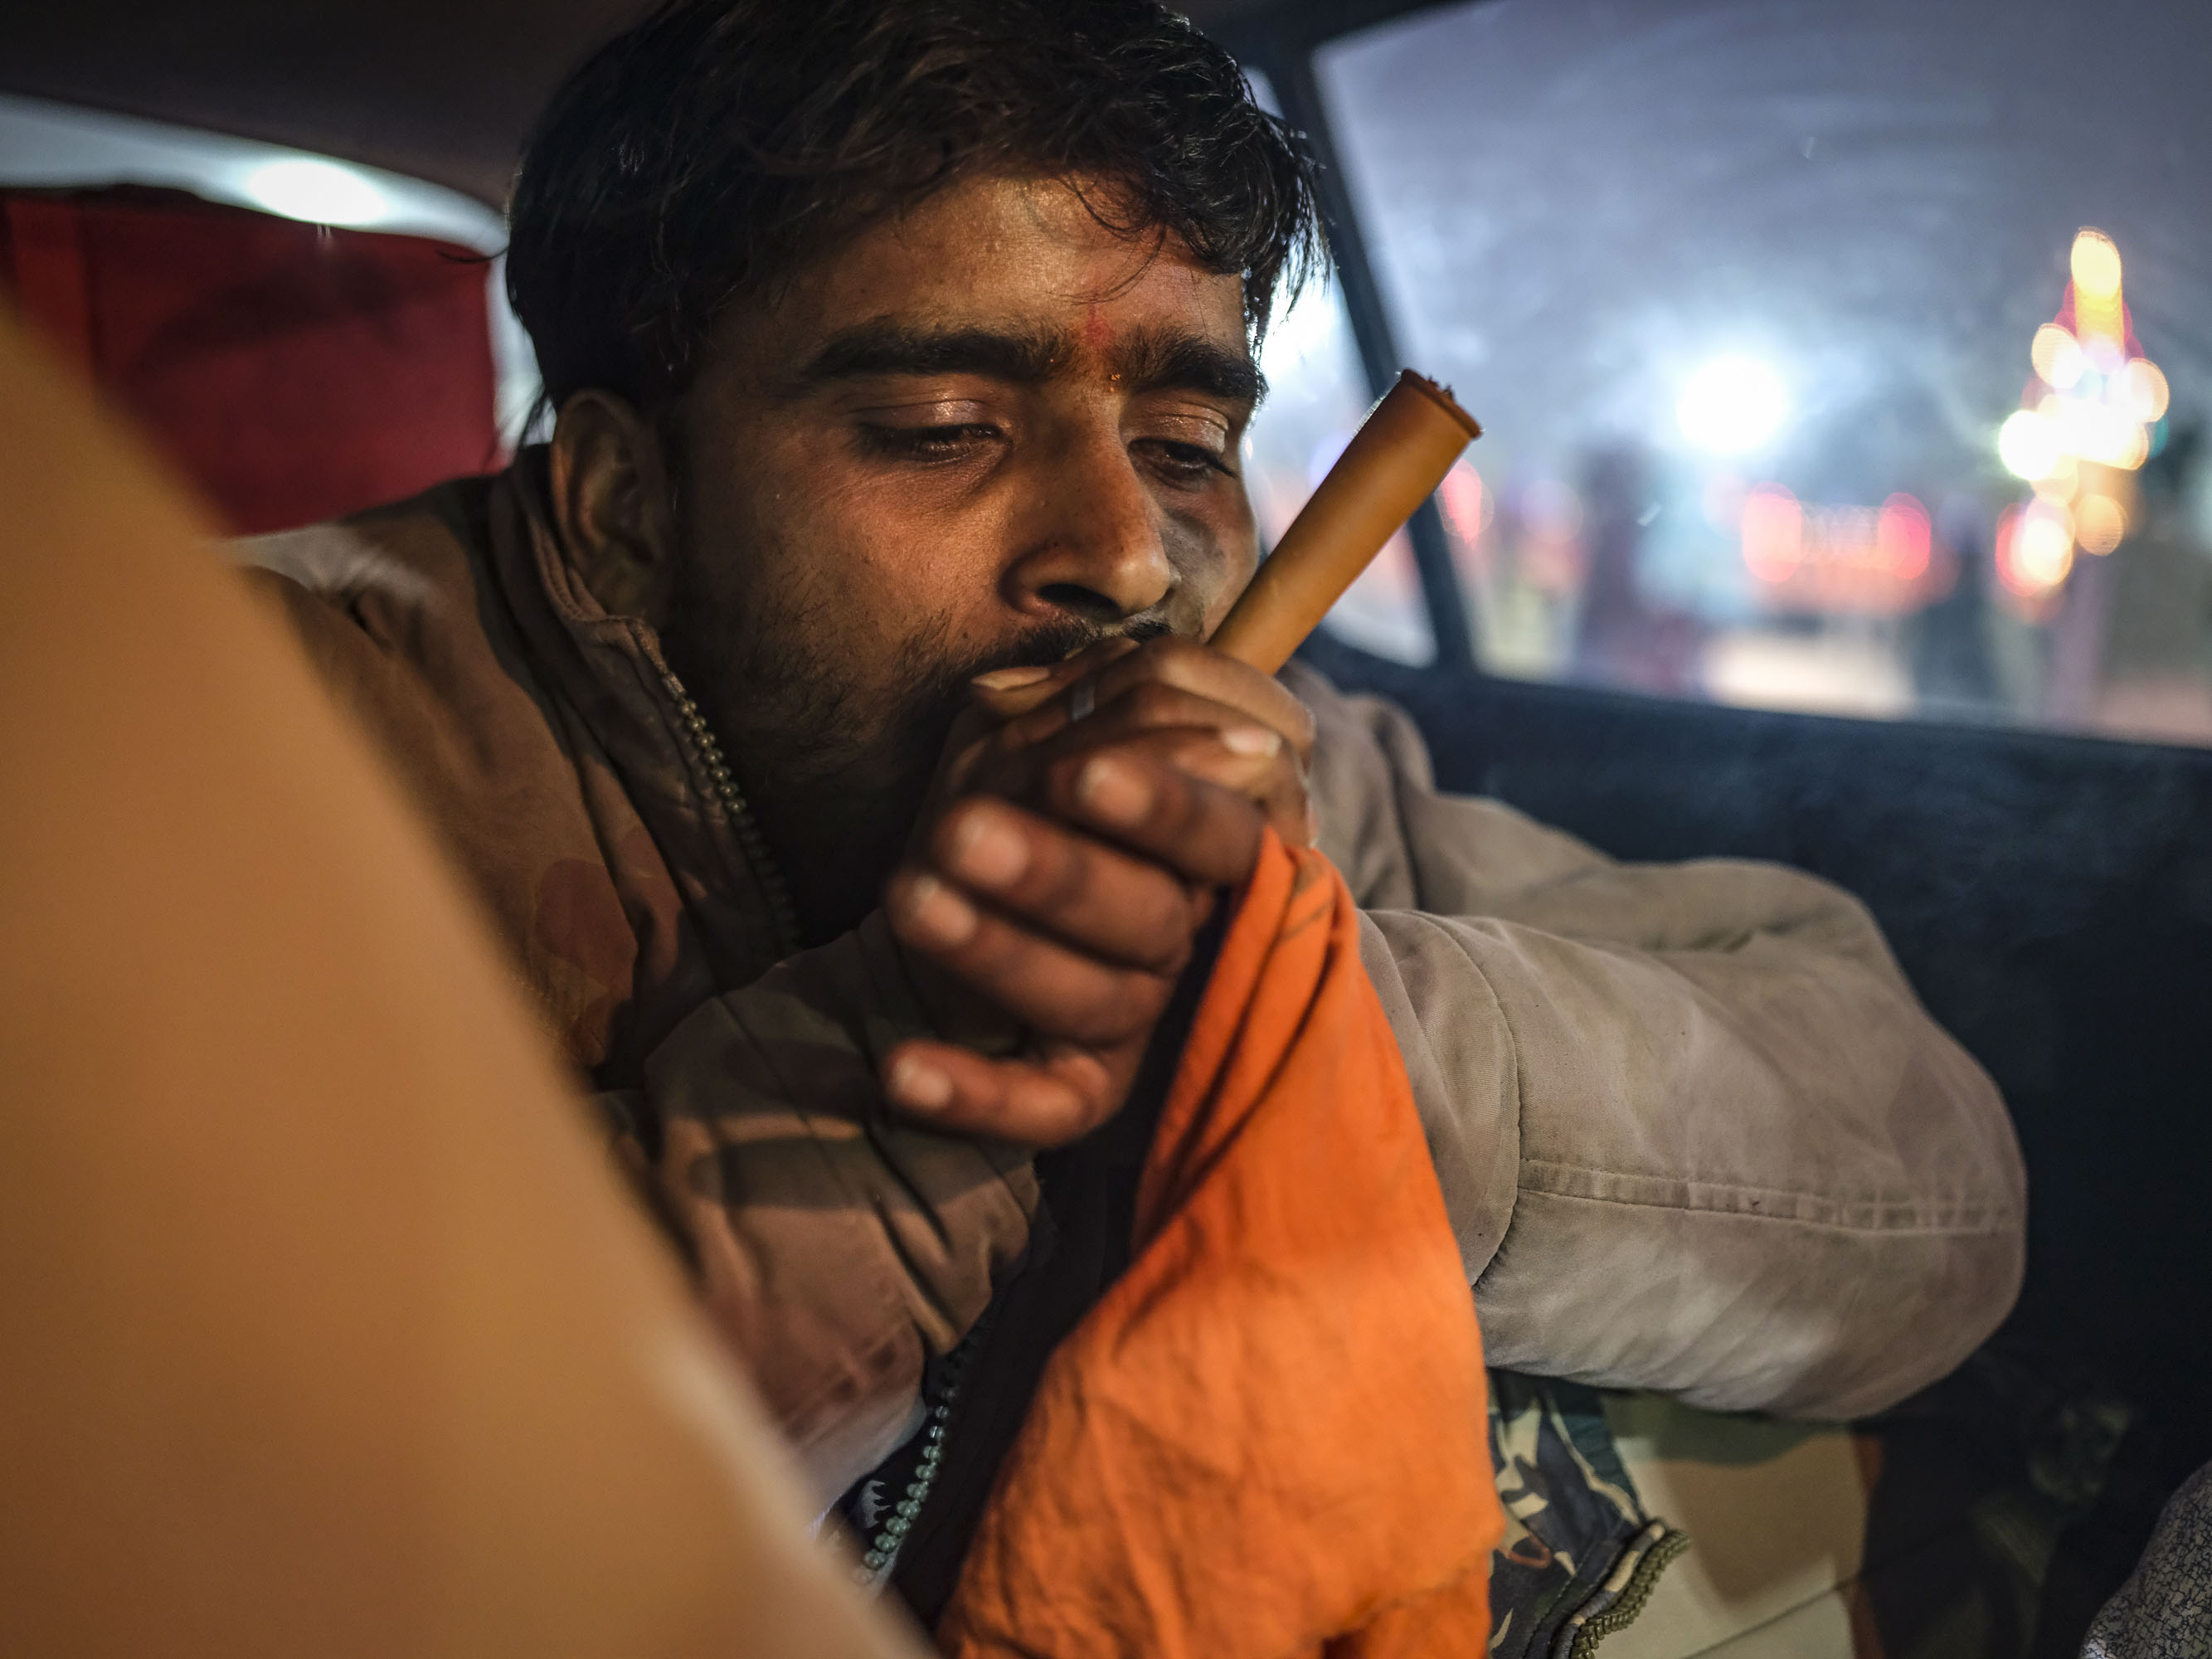 smoking weed smoke man pilgrims Kumbh mela 2019 India Allahabad Prayagraj Ardh hindu religious Festival event rivers photographer jose jeuland photography